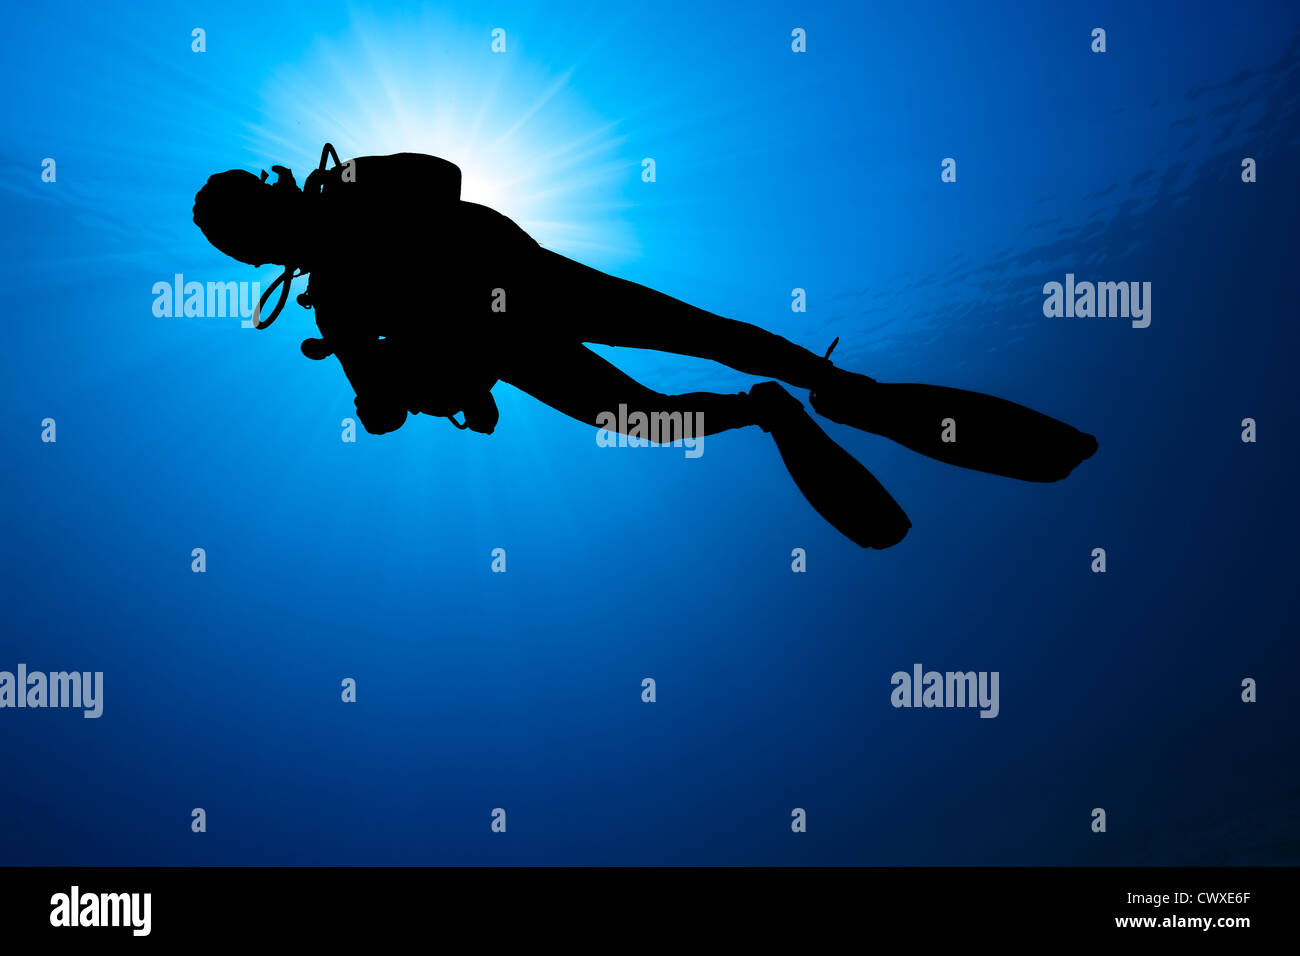 Silhouette of a SCUBA diver in blue water with a sunburst behind - Stock Image